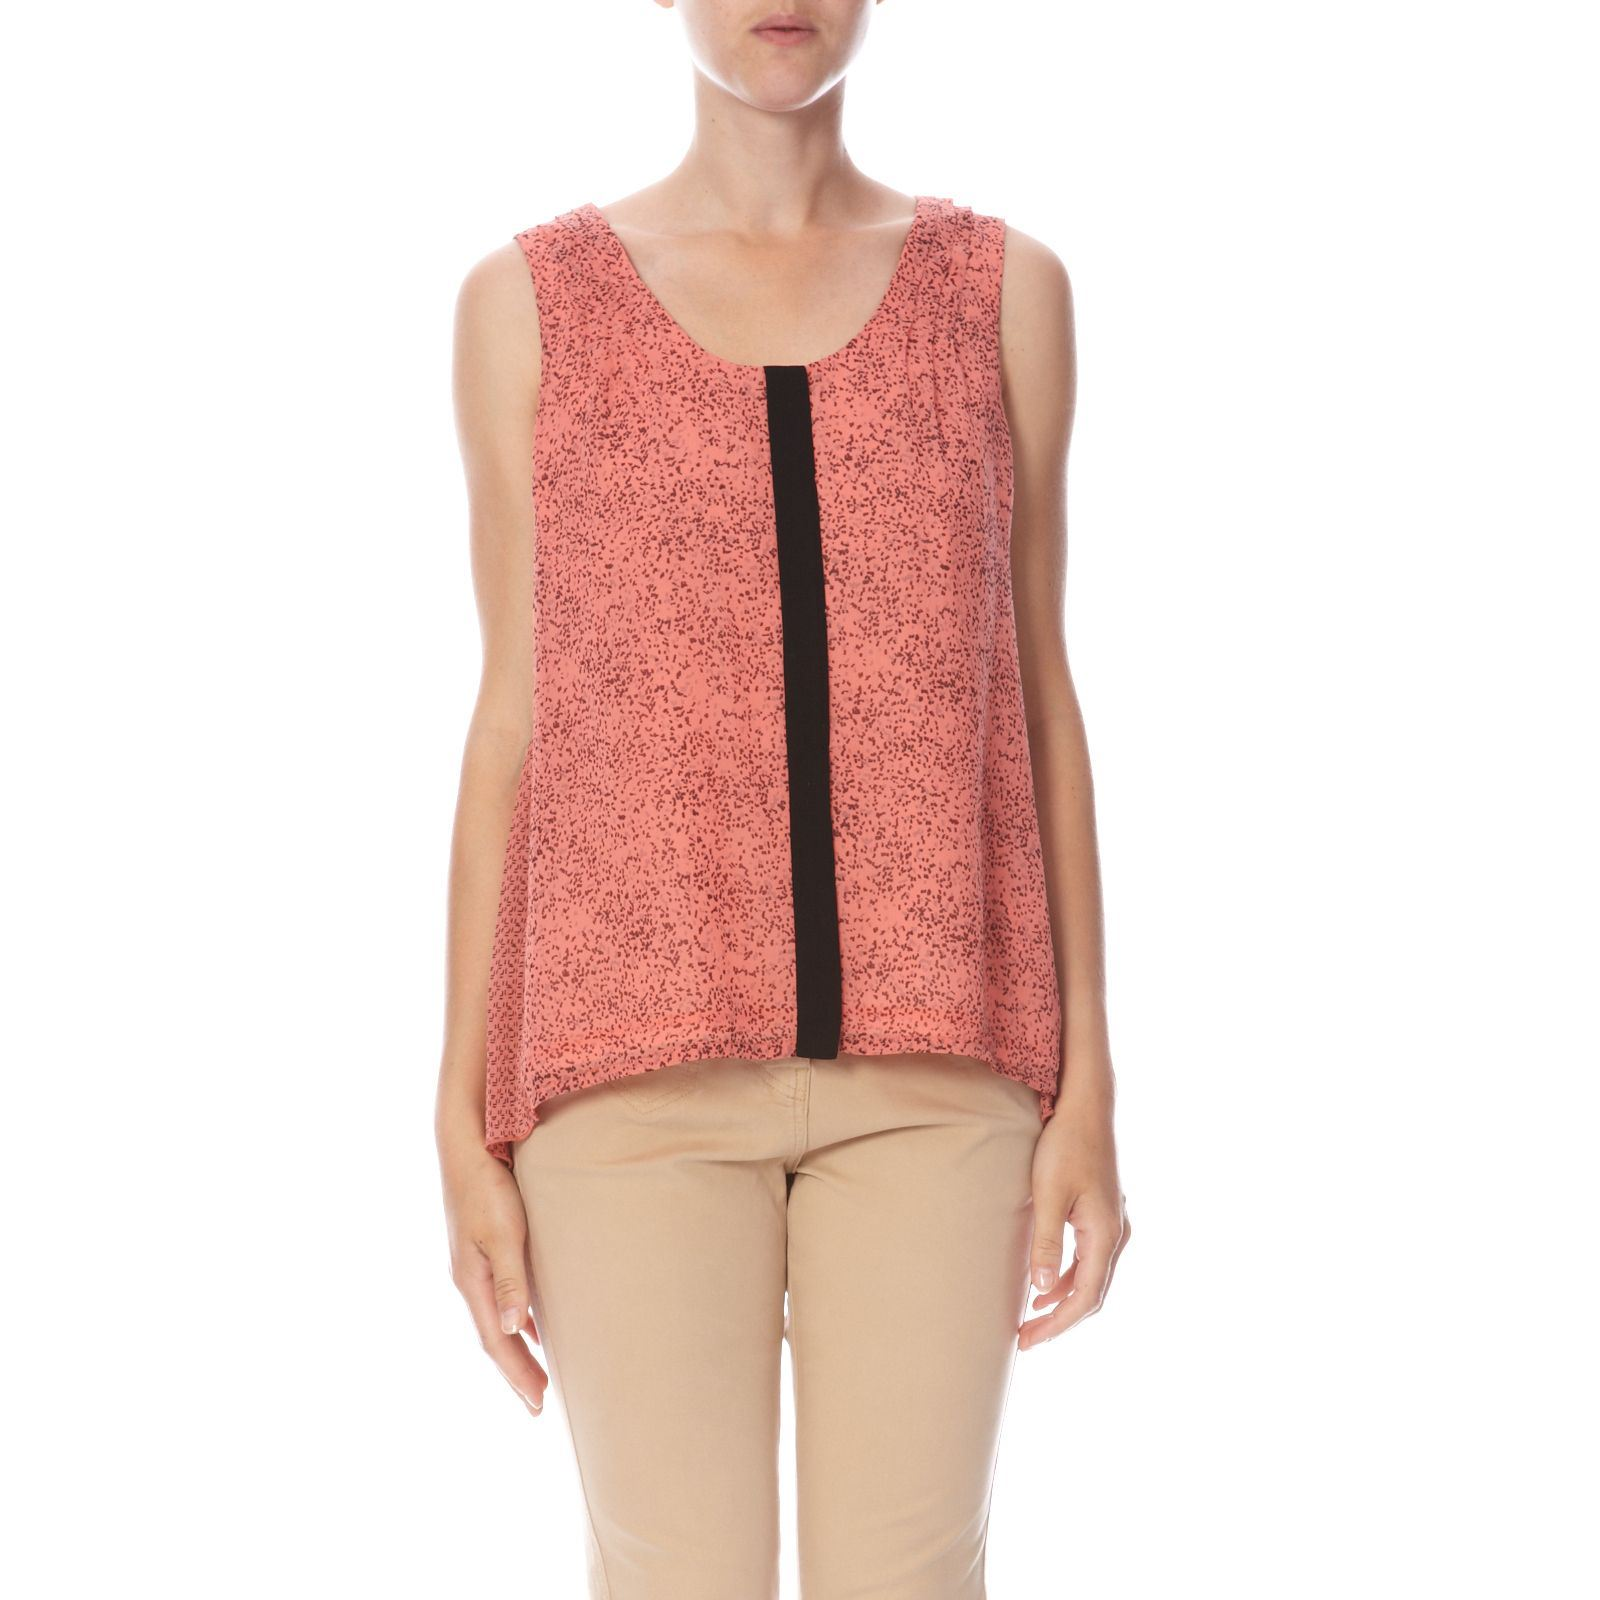 2two Top - corail